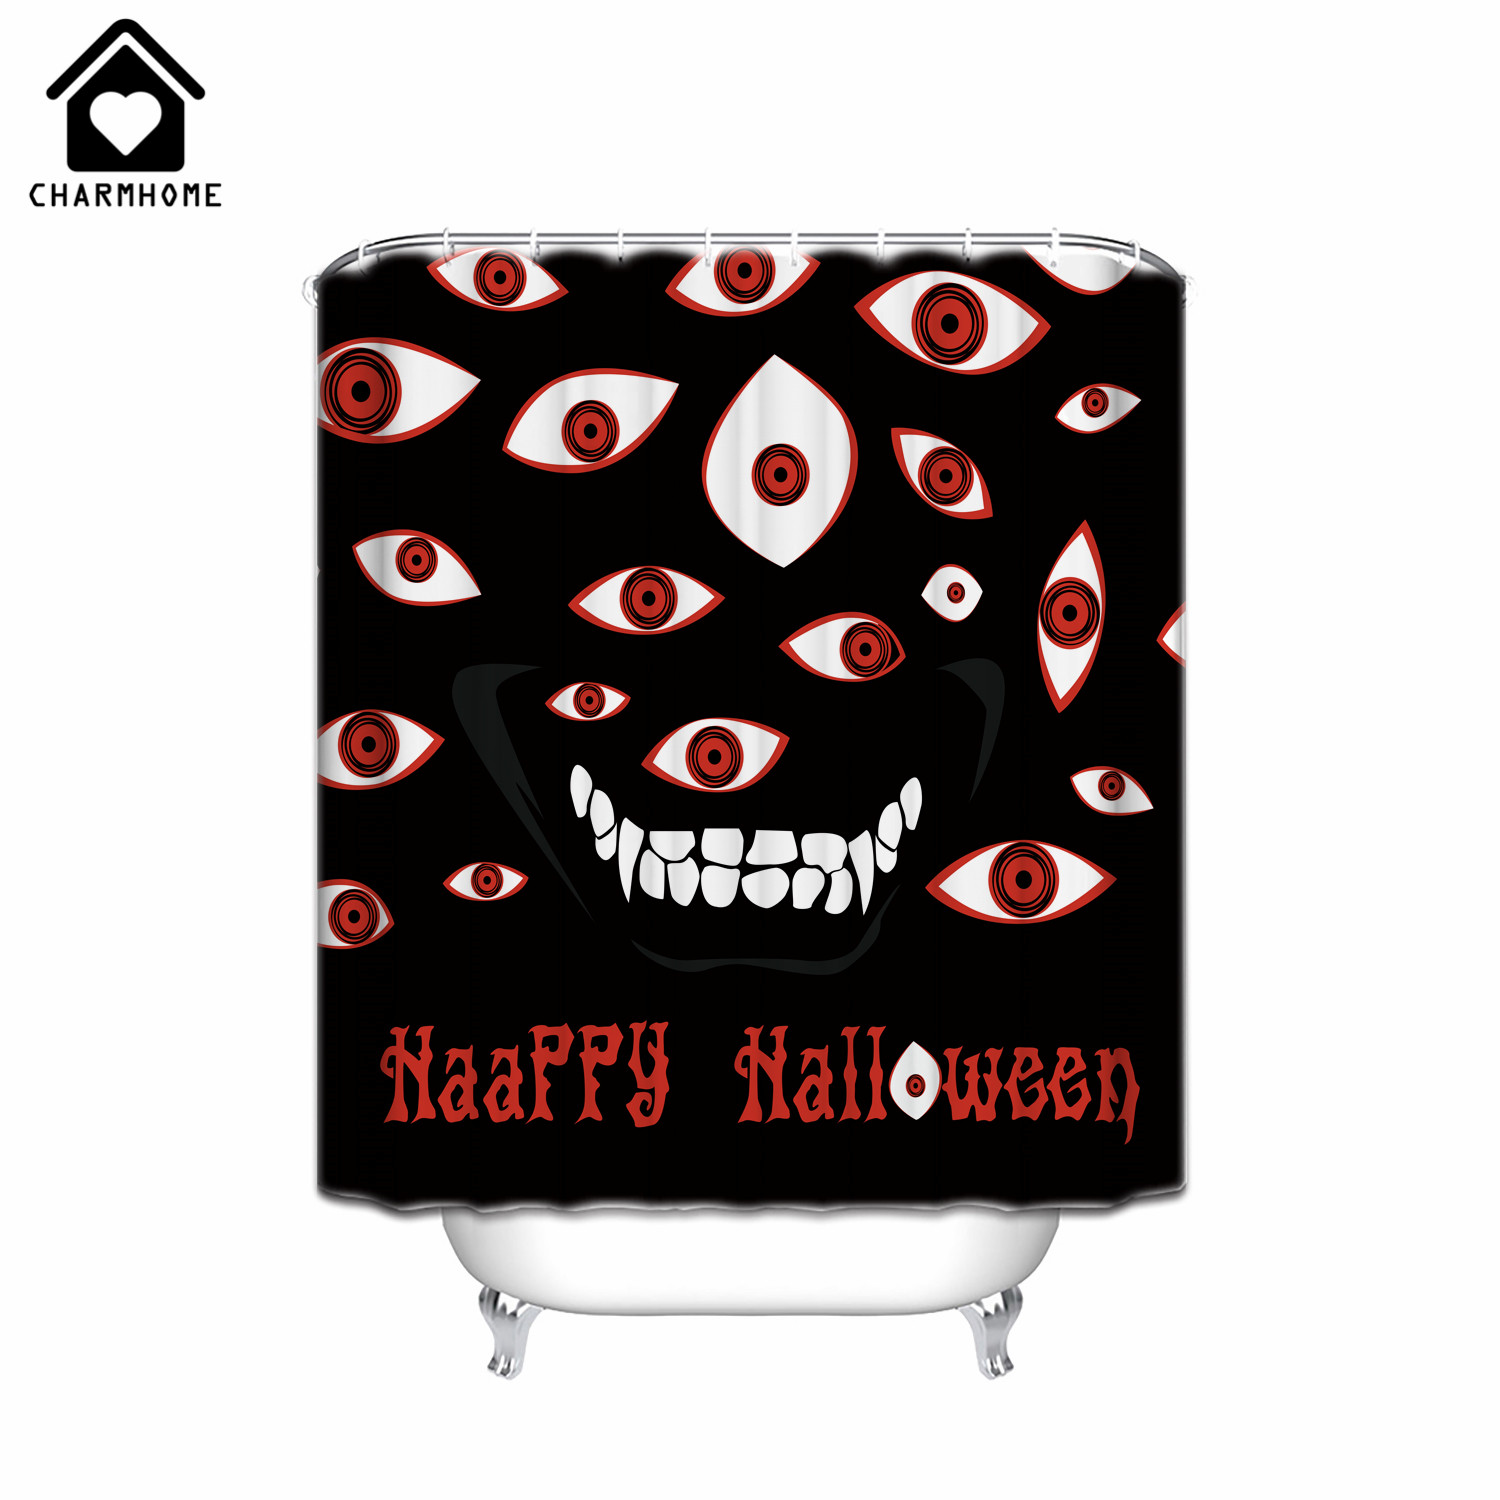 charmhome new horrible eyes waterproof shower curtain halloween bathroom shower curtain decor unique bath curtain with 12 hooks - Halloween Bath Towels